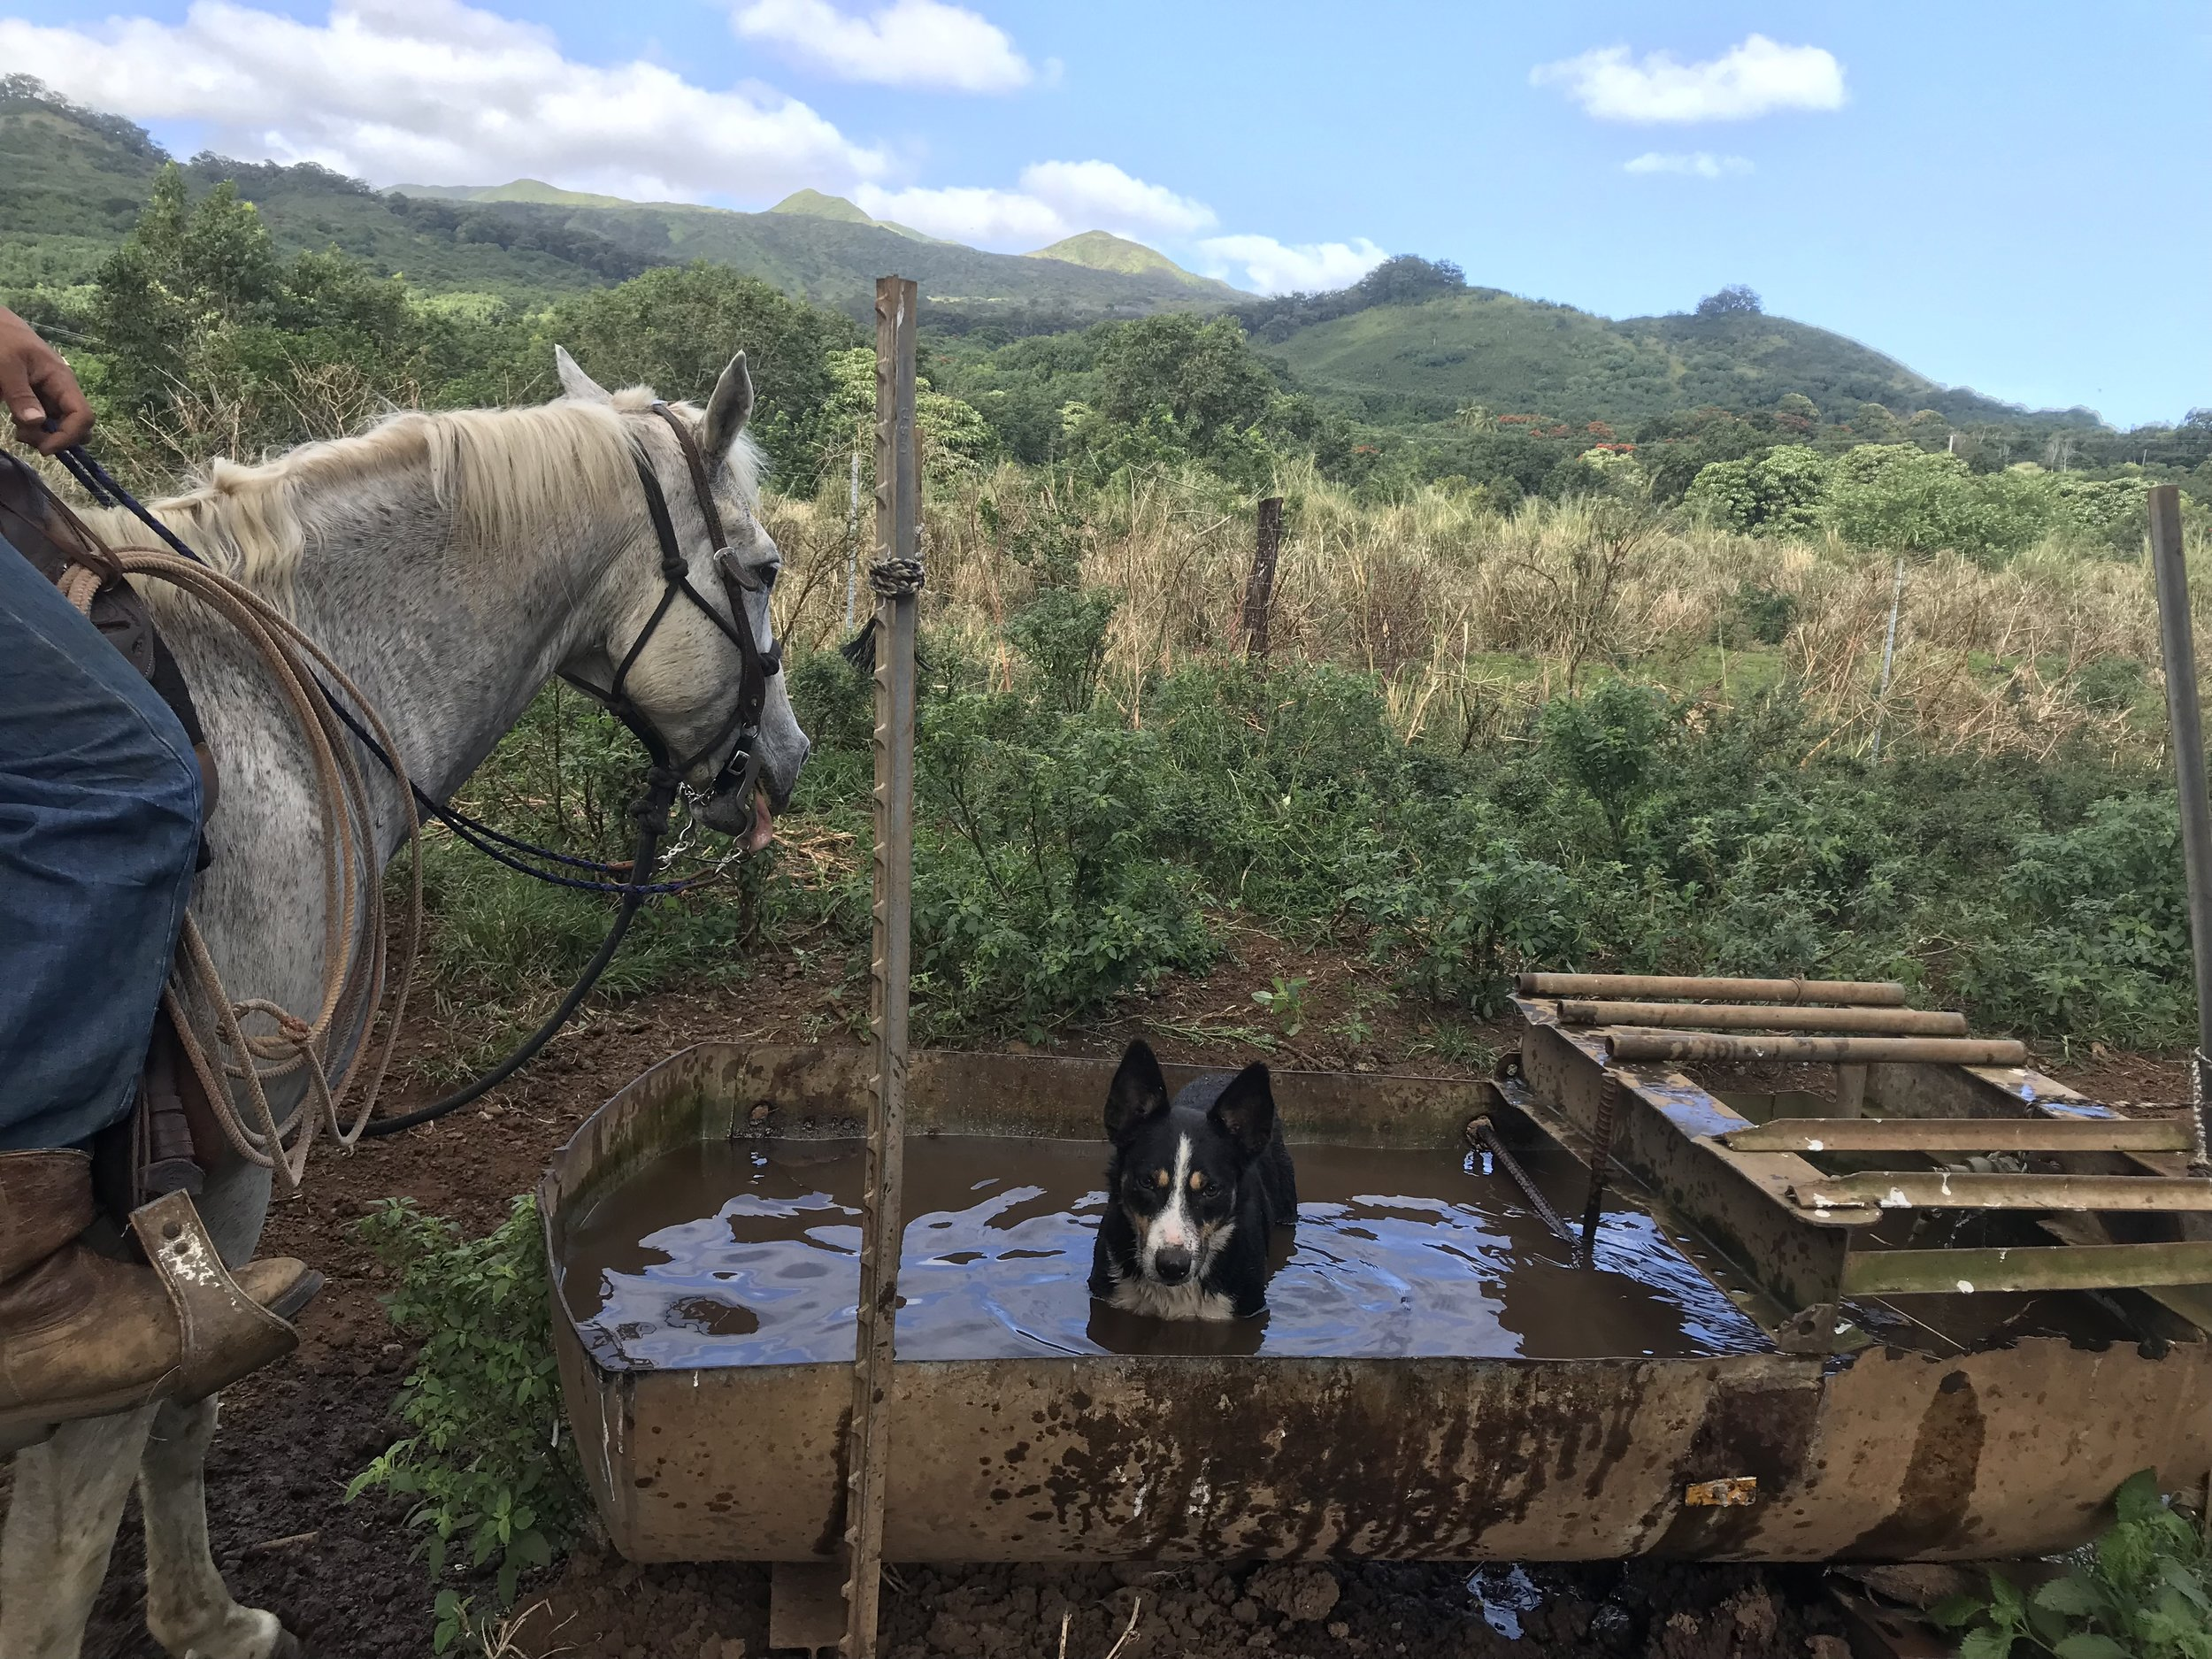 A cattle dog getting creative at cooling off at Hana Ranch.